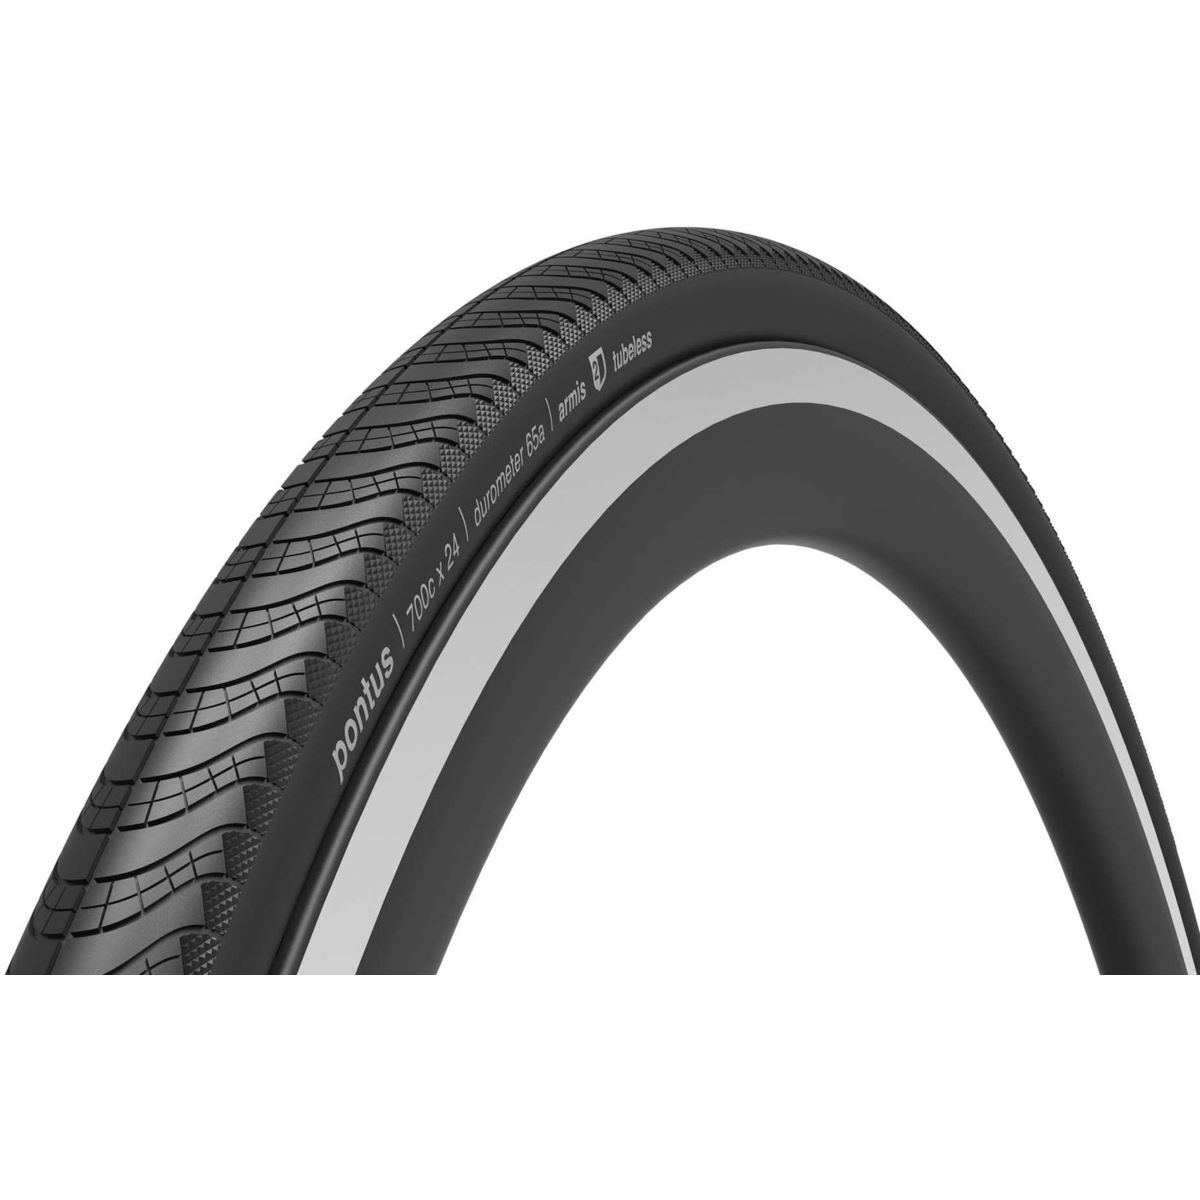 Ere Research Pontus Tubeless 120TPI Folding Road Tyre - Cubiertas